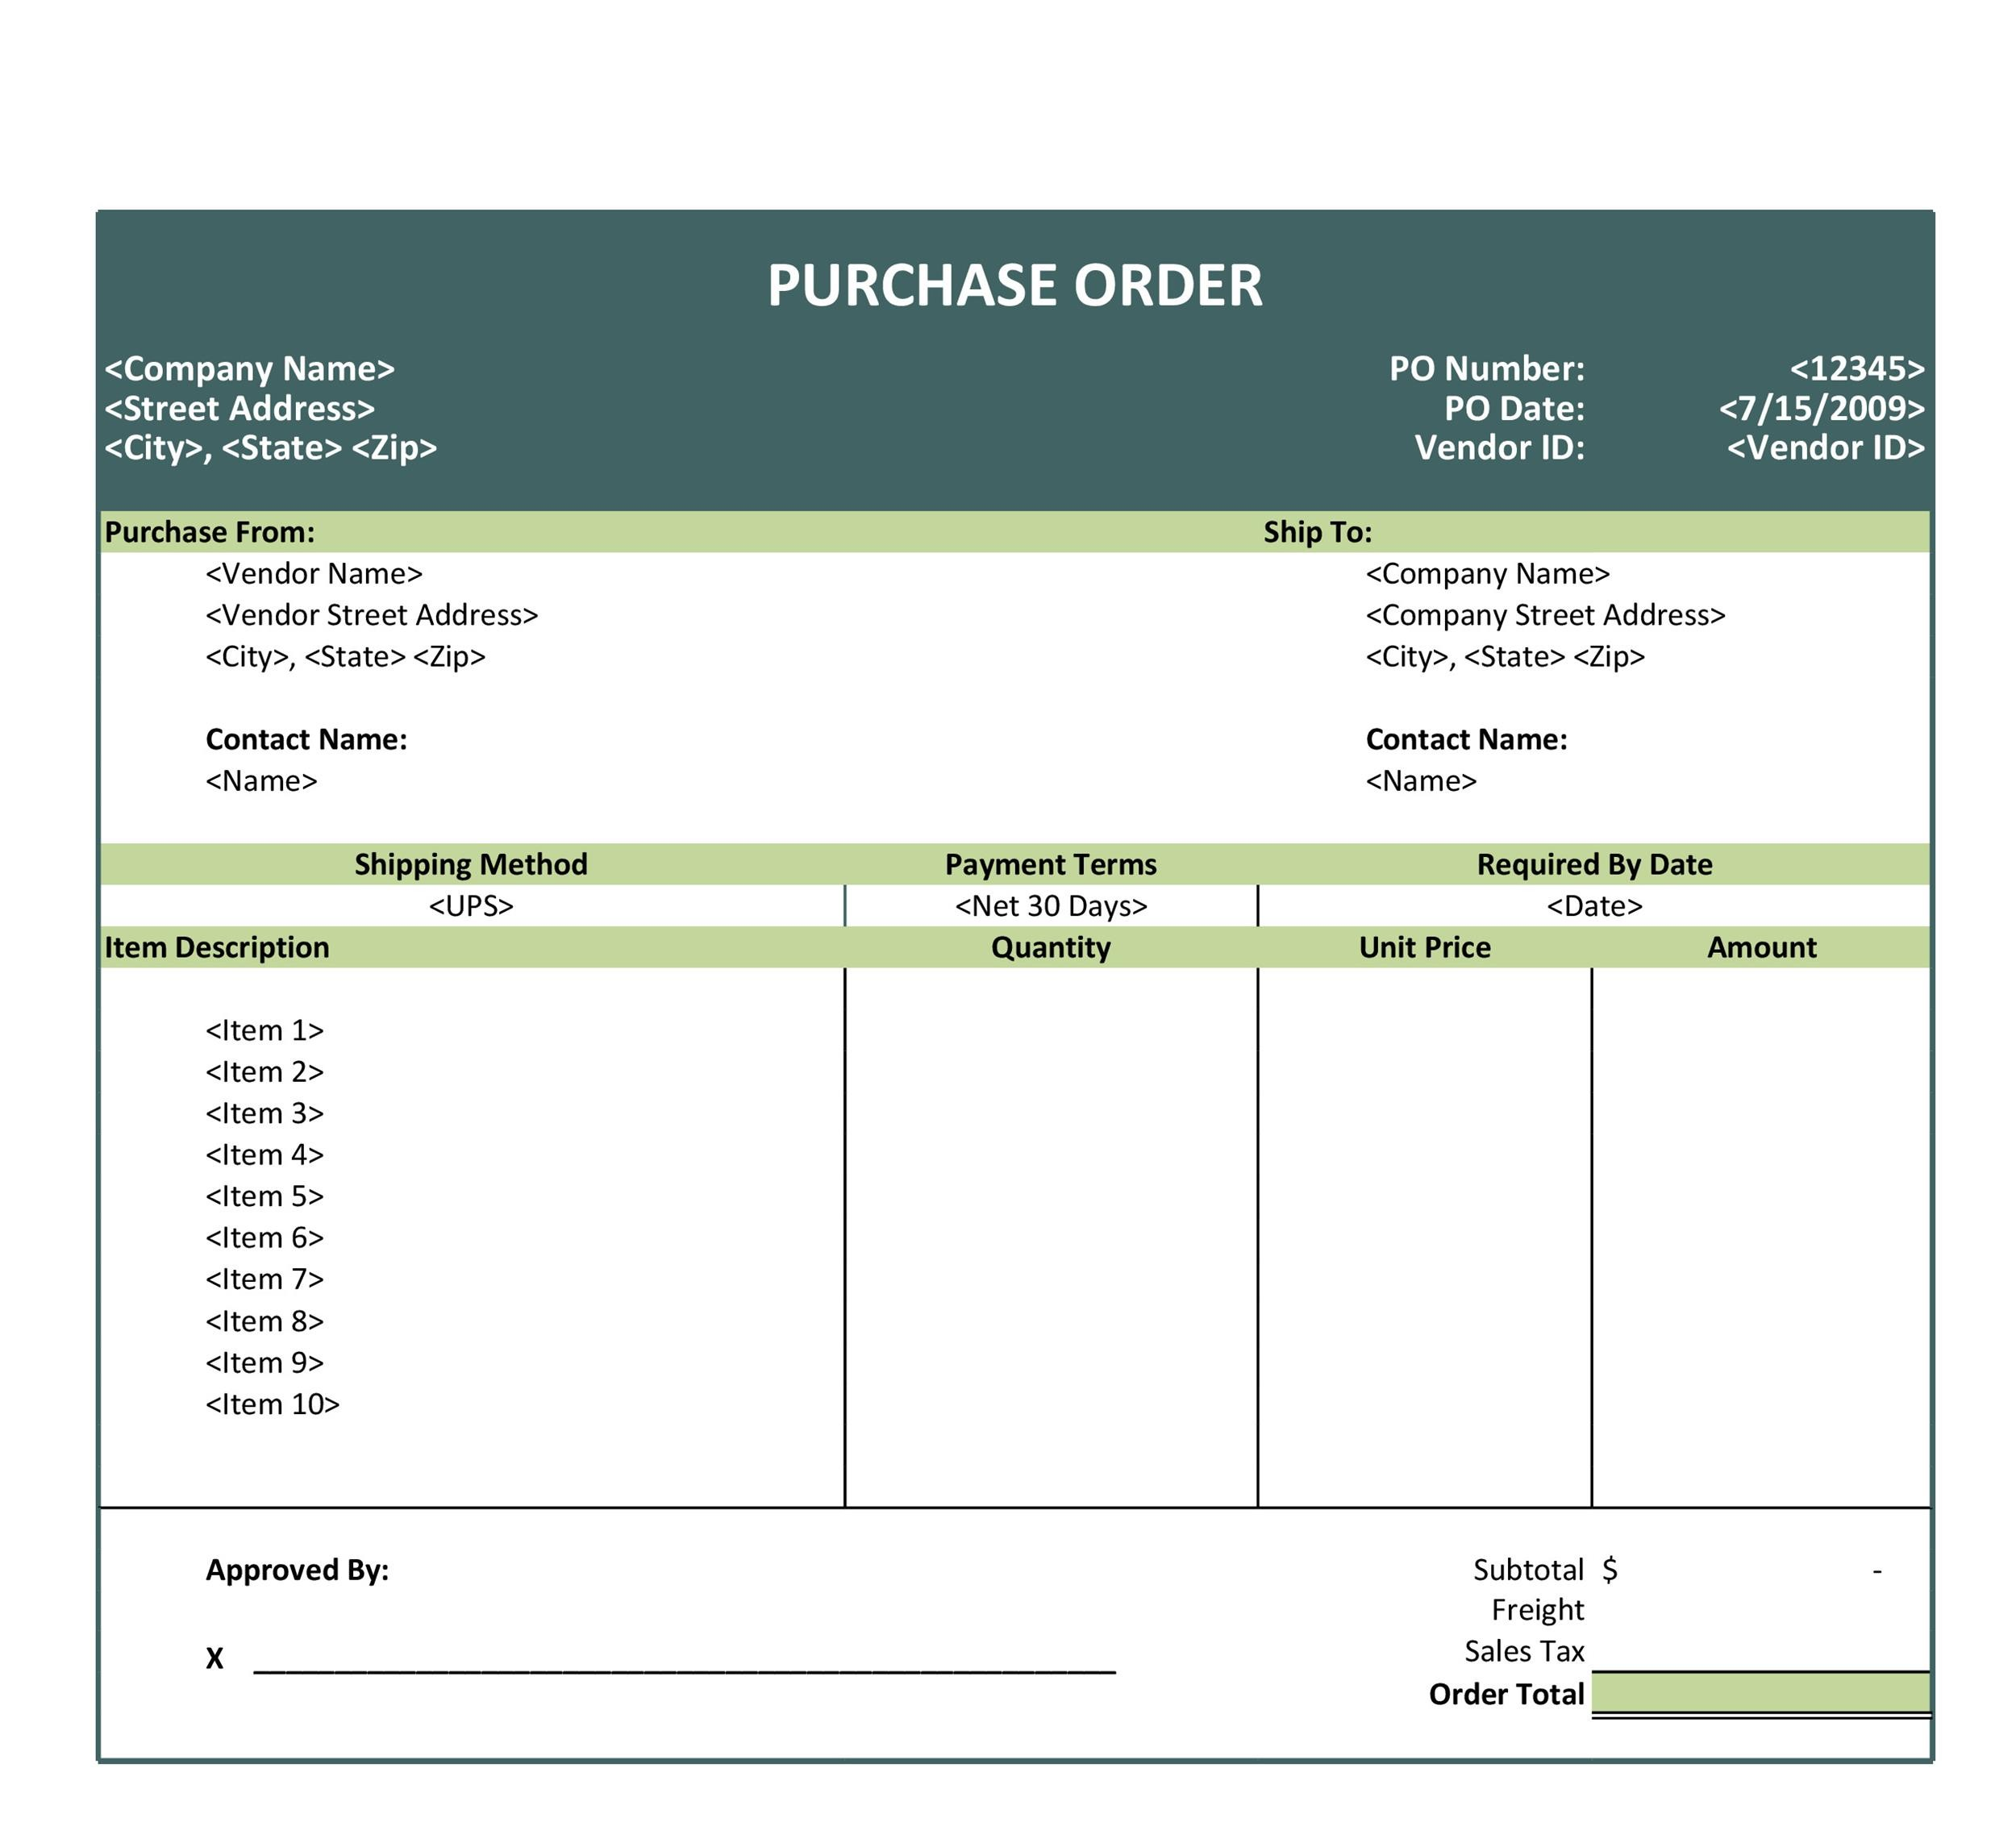 purchase order template uk  37 Free Purchase Order Templates in Word